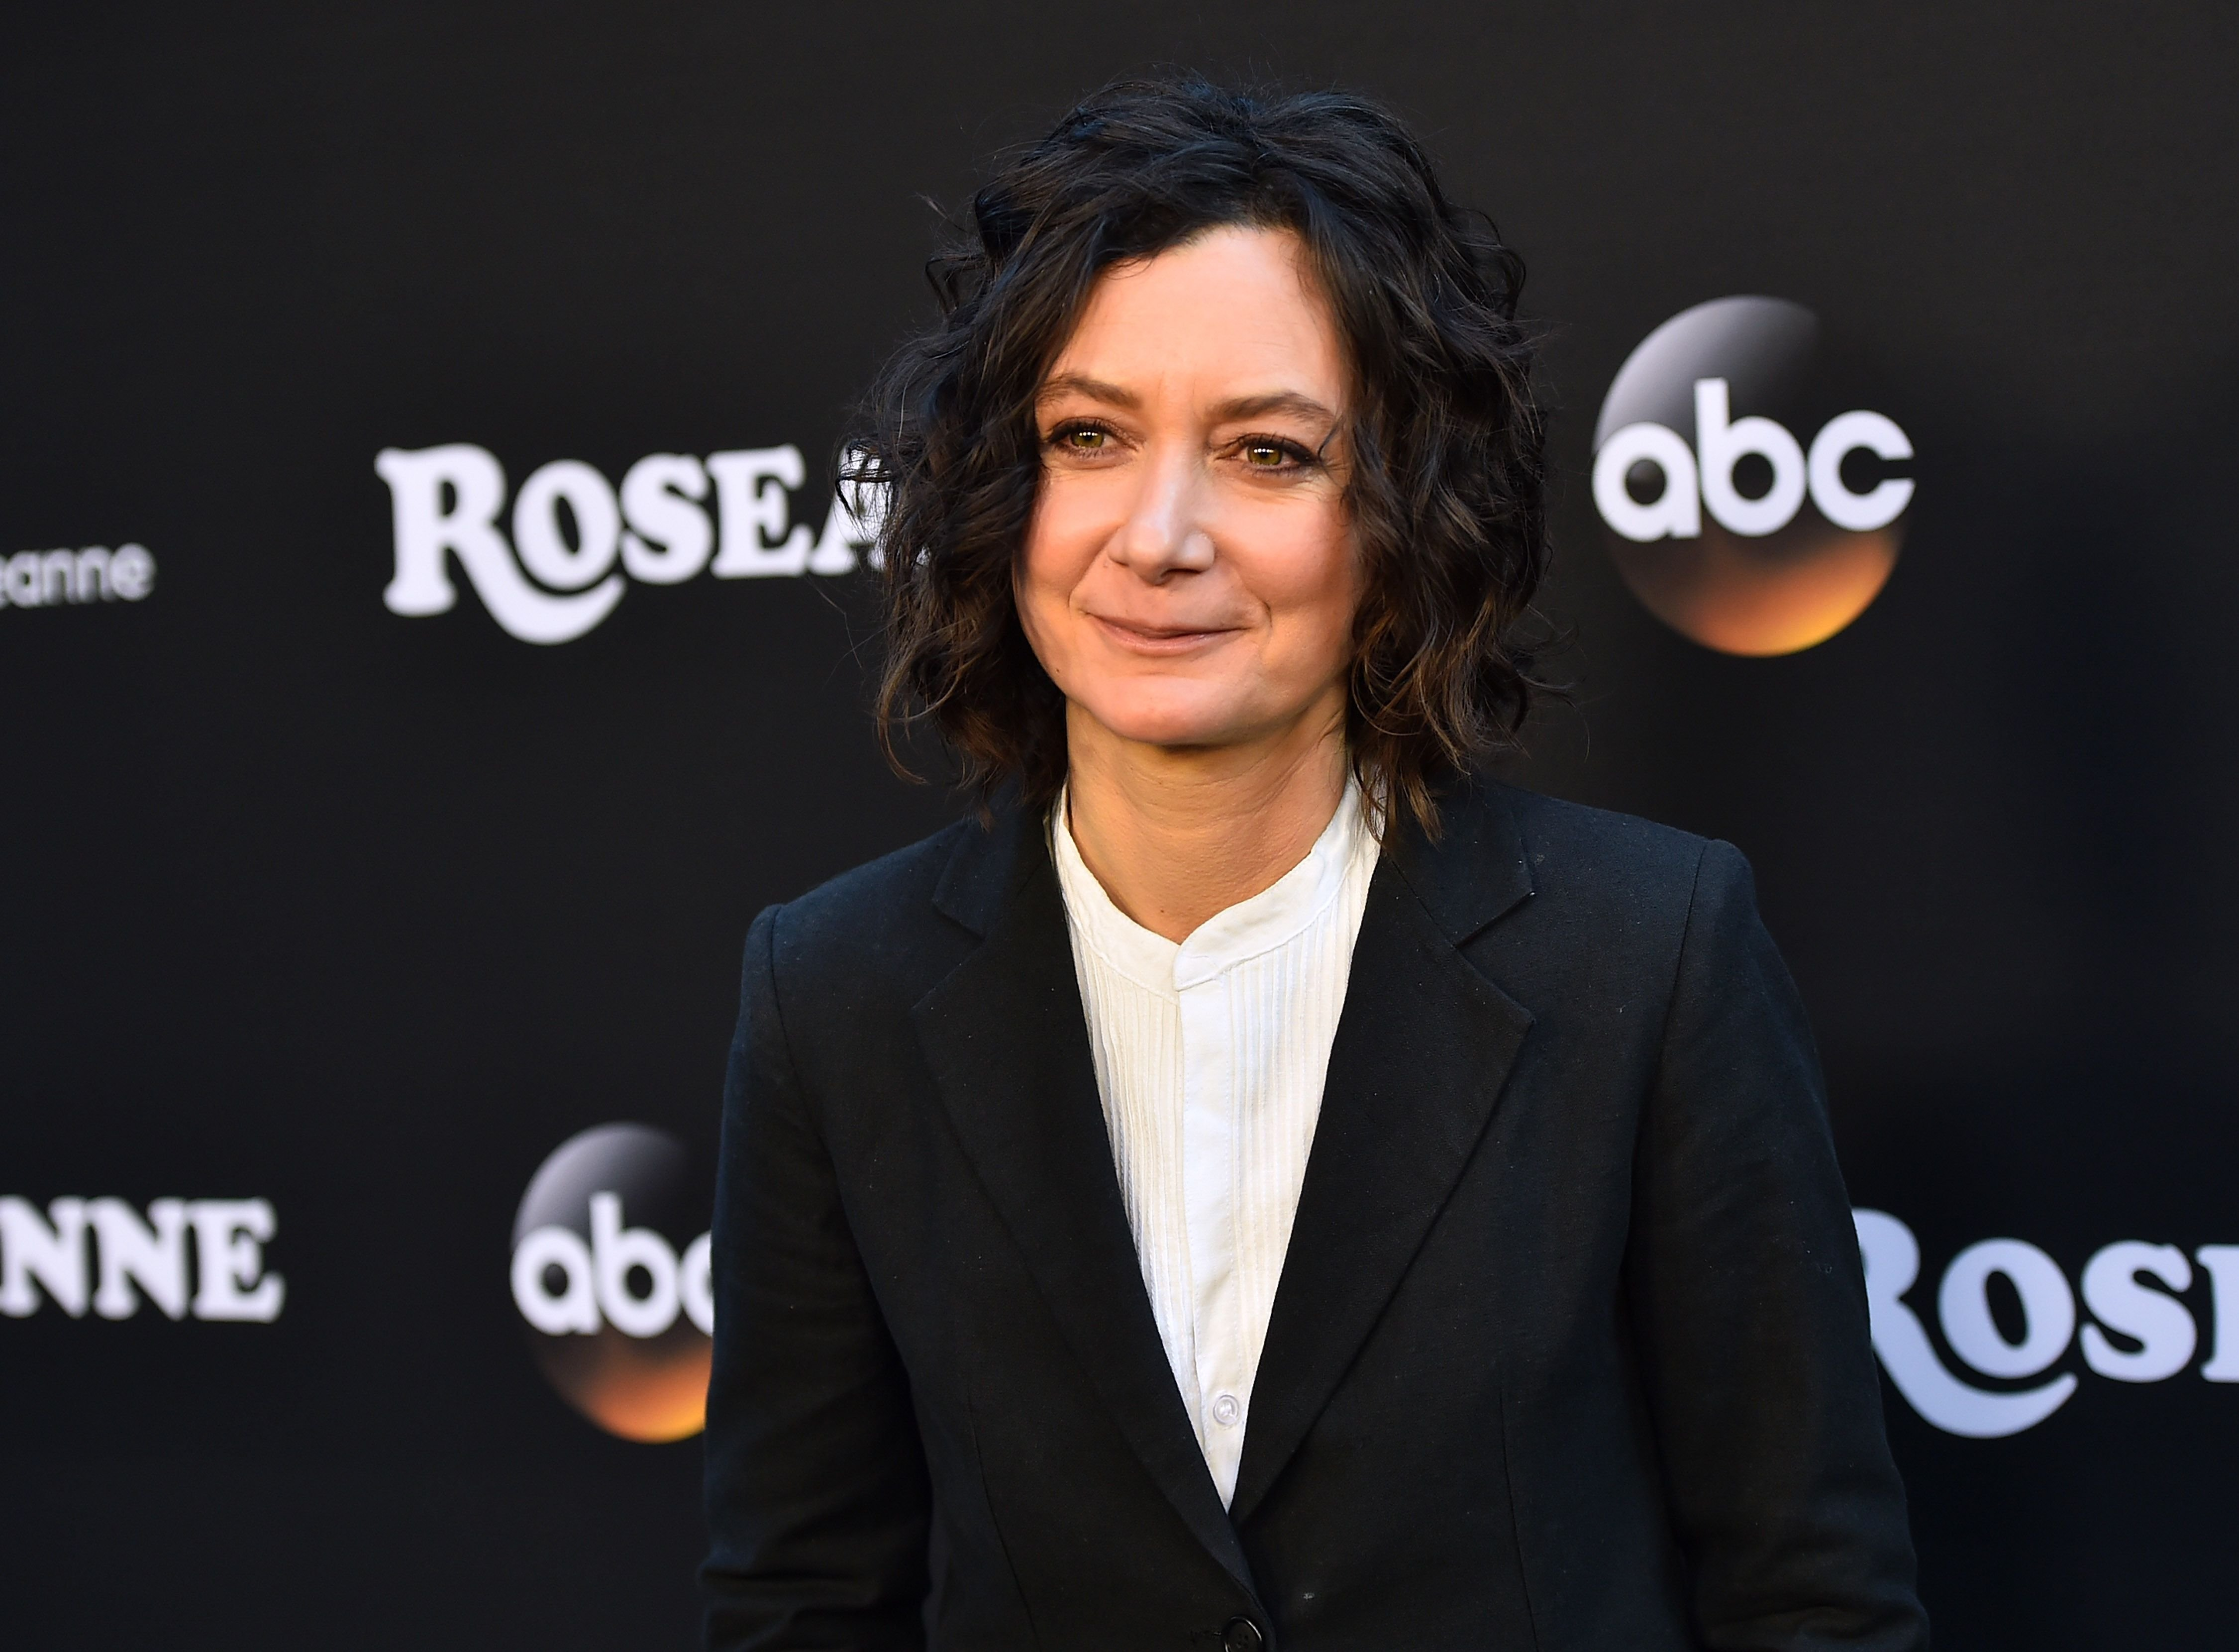 """Sara Gilbert at the premiere of ABC's """"Roseanne"""" at Walt Disney Studio Lot on March 23, 2018 